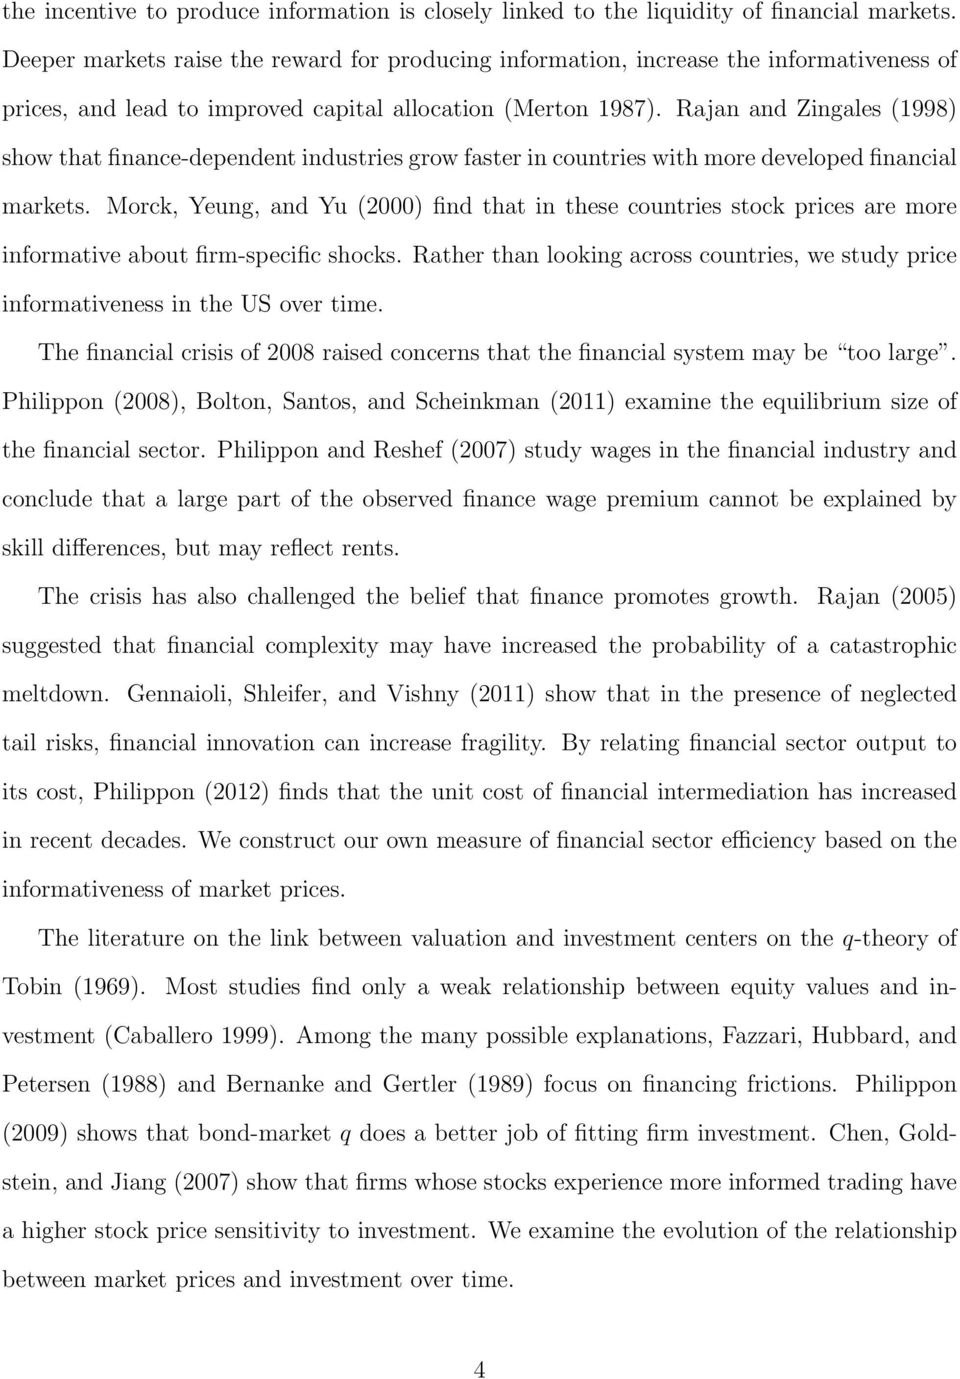 Rajan and Zingales (1998) show that finance-dependent industries grow faster in countries with more developed financial markets.